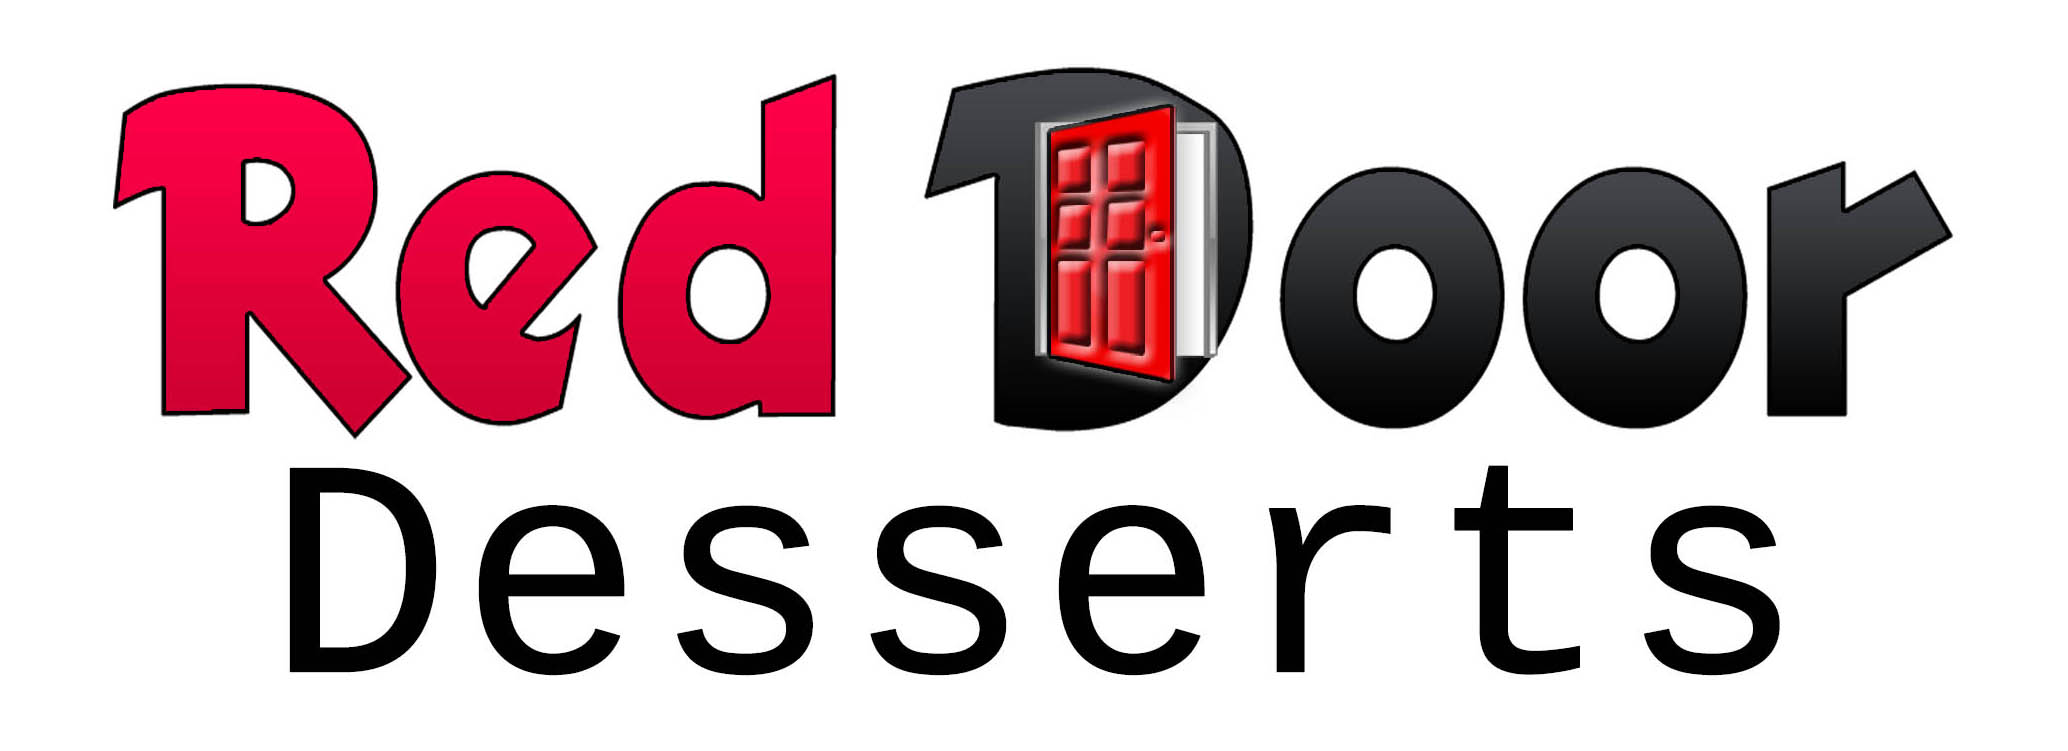 Logo Design by stammy - Entry No. 68 in the Logo Design Contest Fun Logo Design for Red Door Desserts.